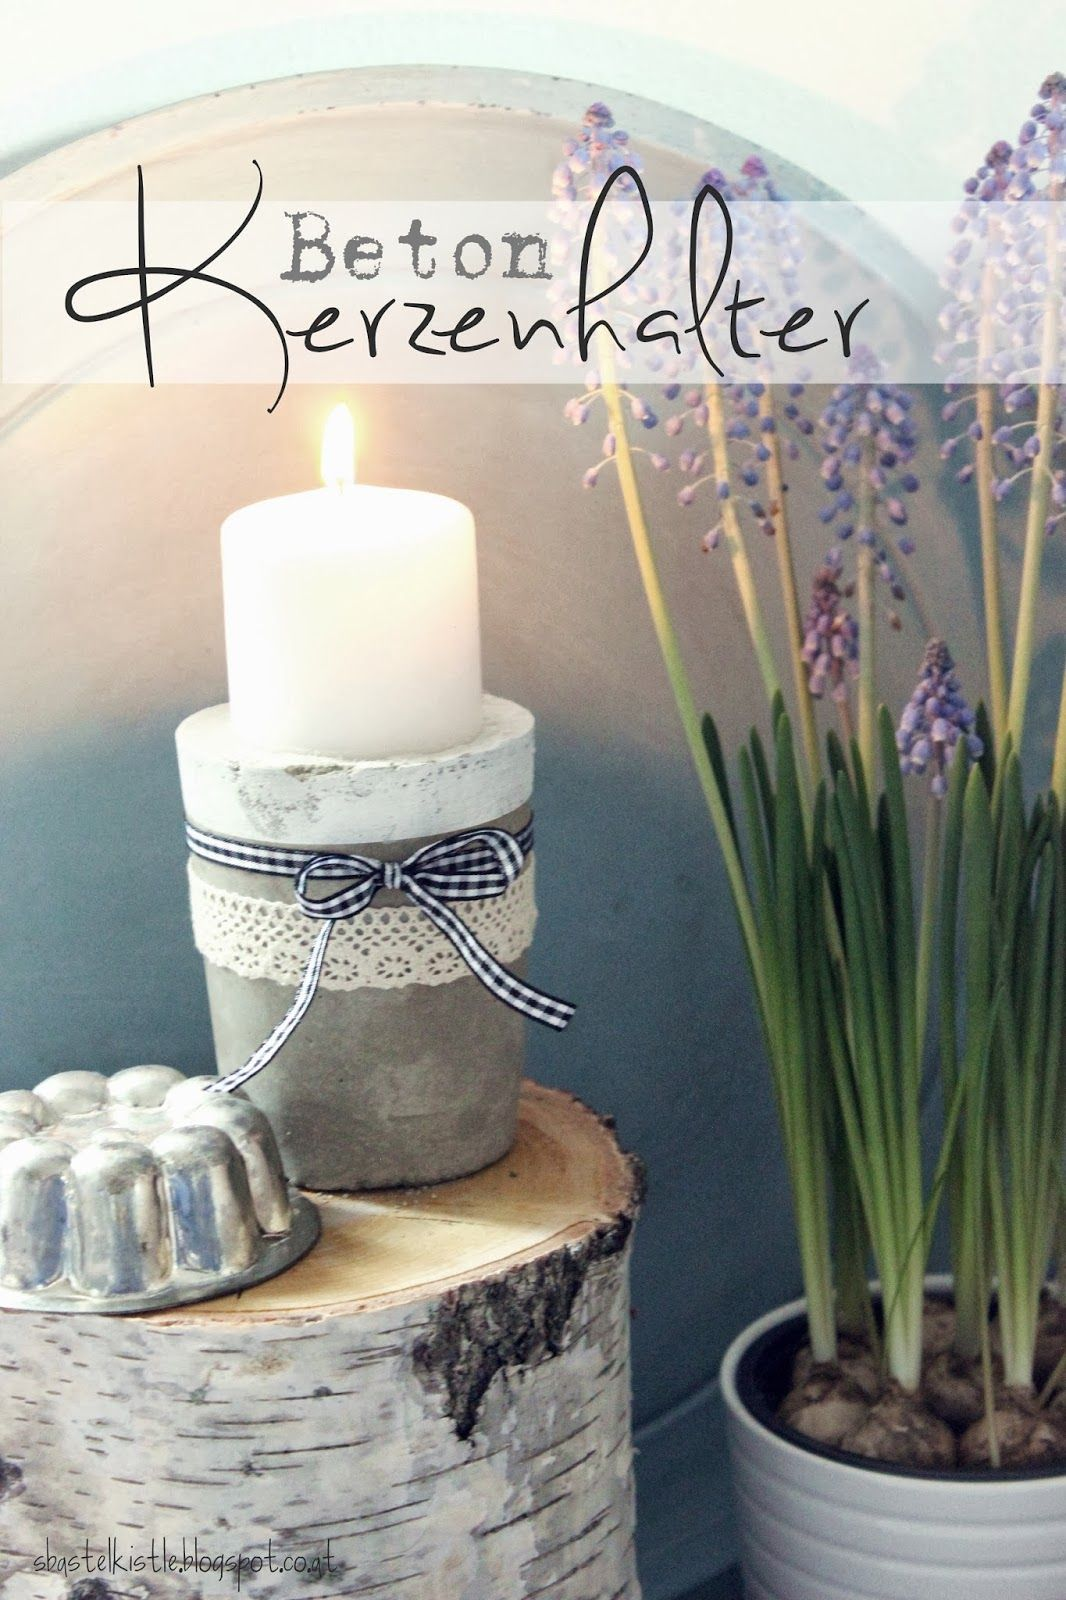 diy beton kerzenhalter s 39 bastelkistle deko selber machen pinterest. Black Bedroom Furniture Sets. Home Design Ideas